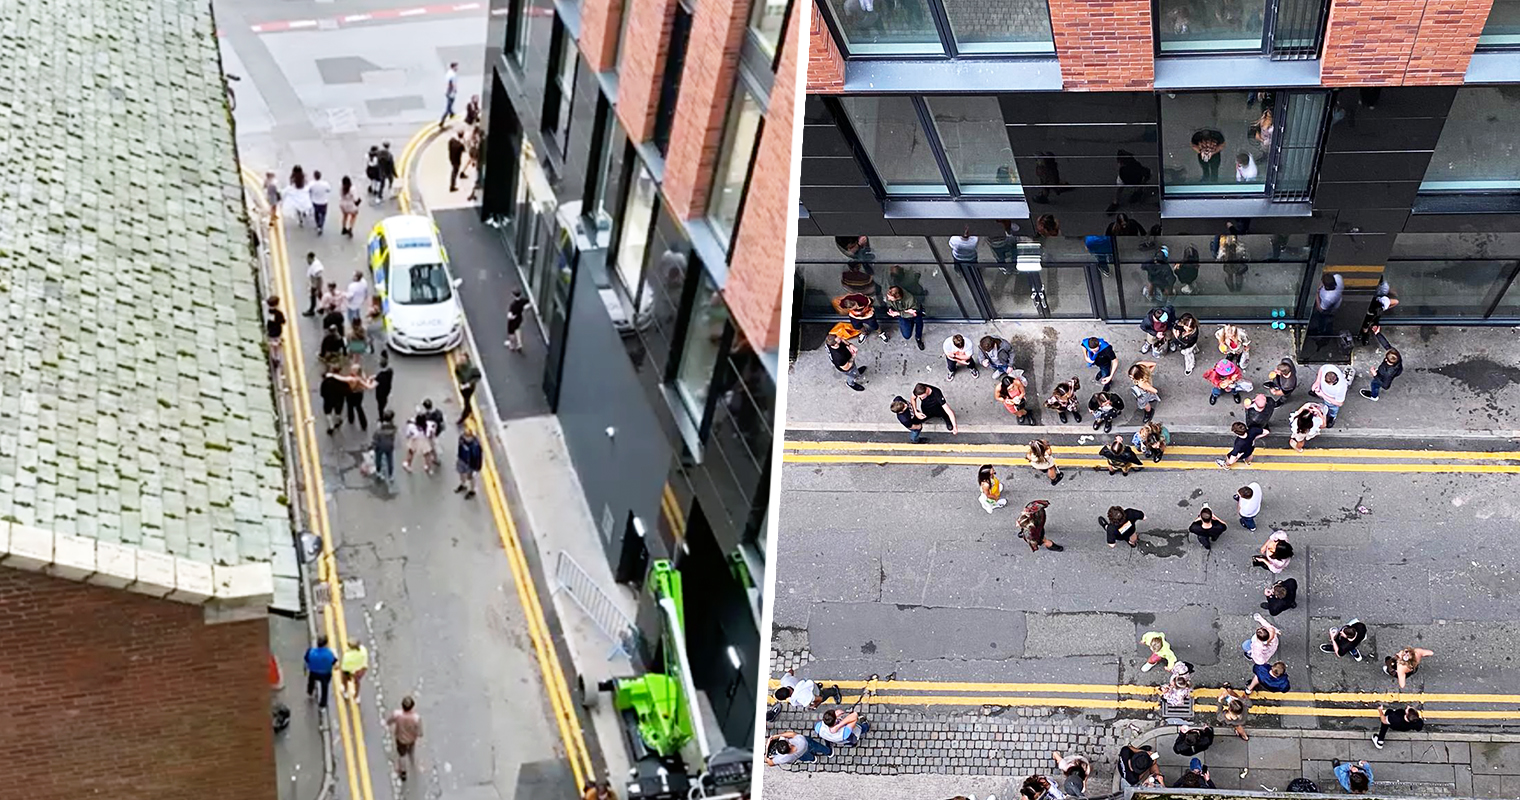 Police officers bust 'packed illegal rave' in Northern Quarter hotel room, The Manc